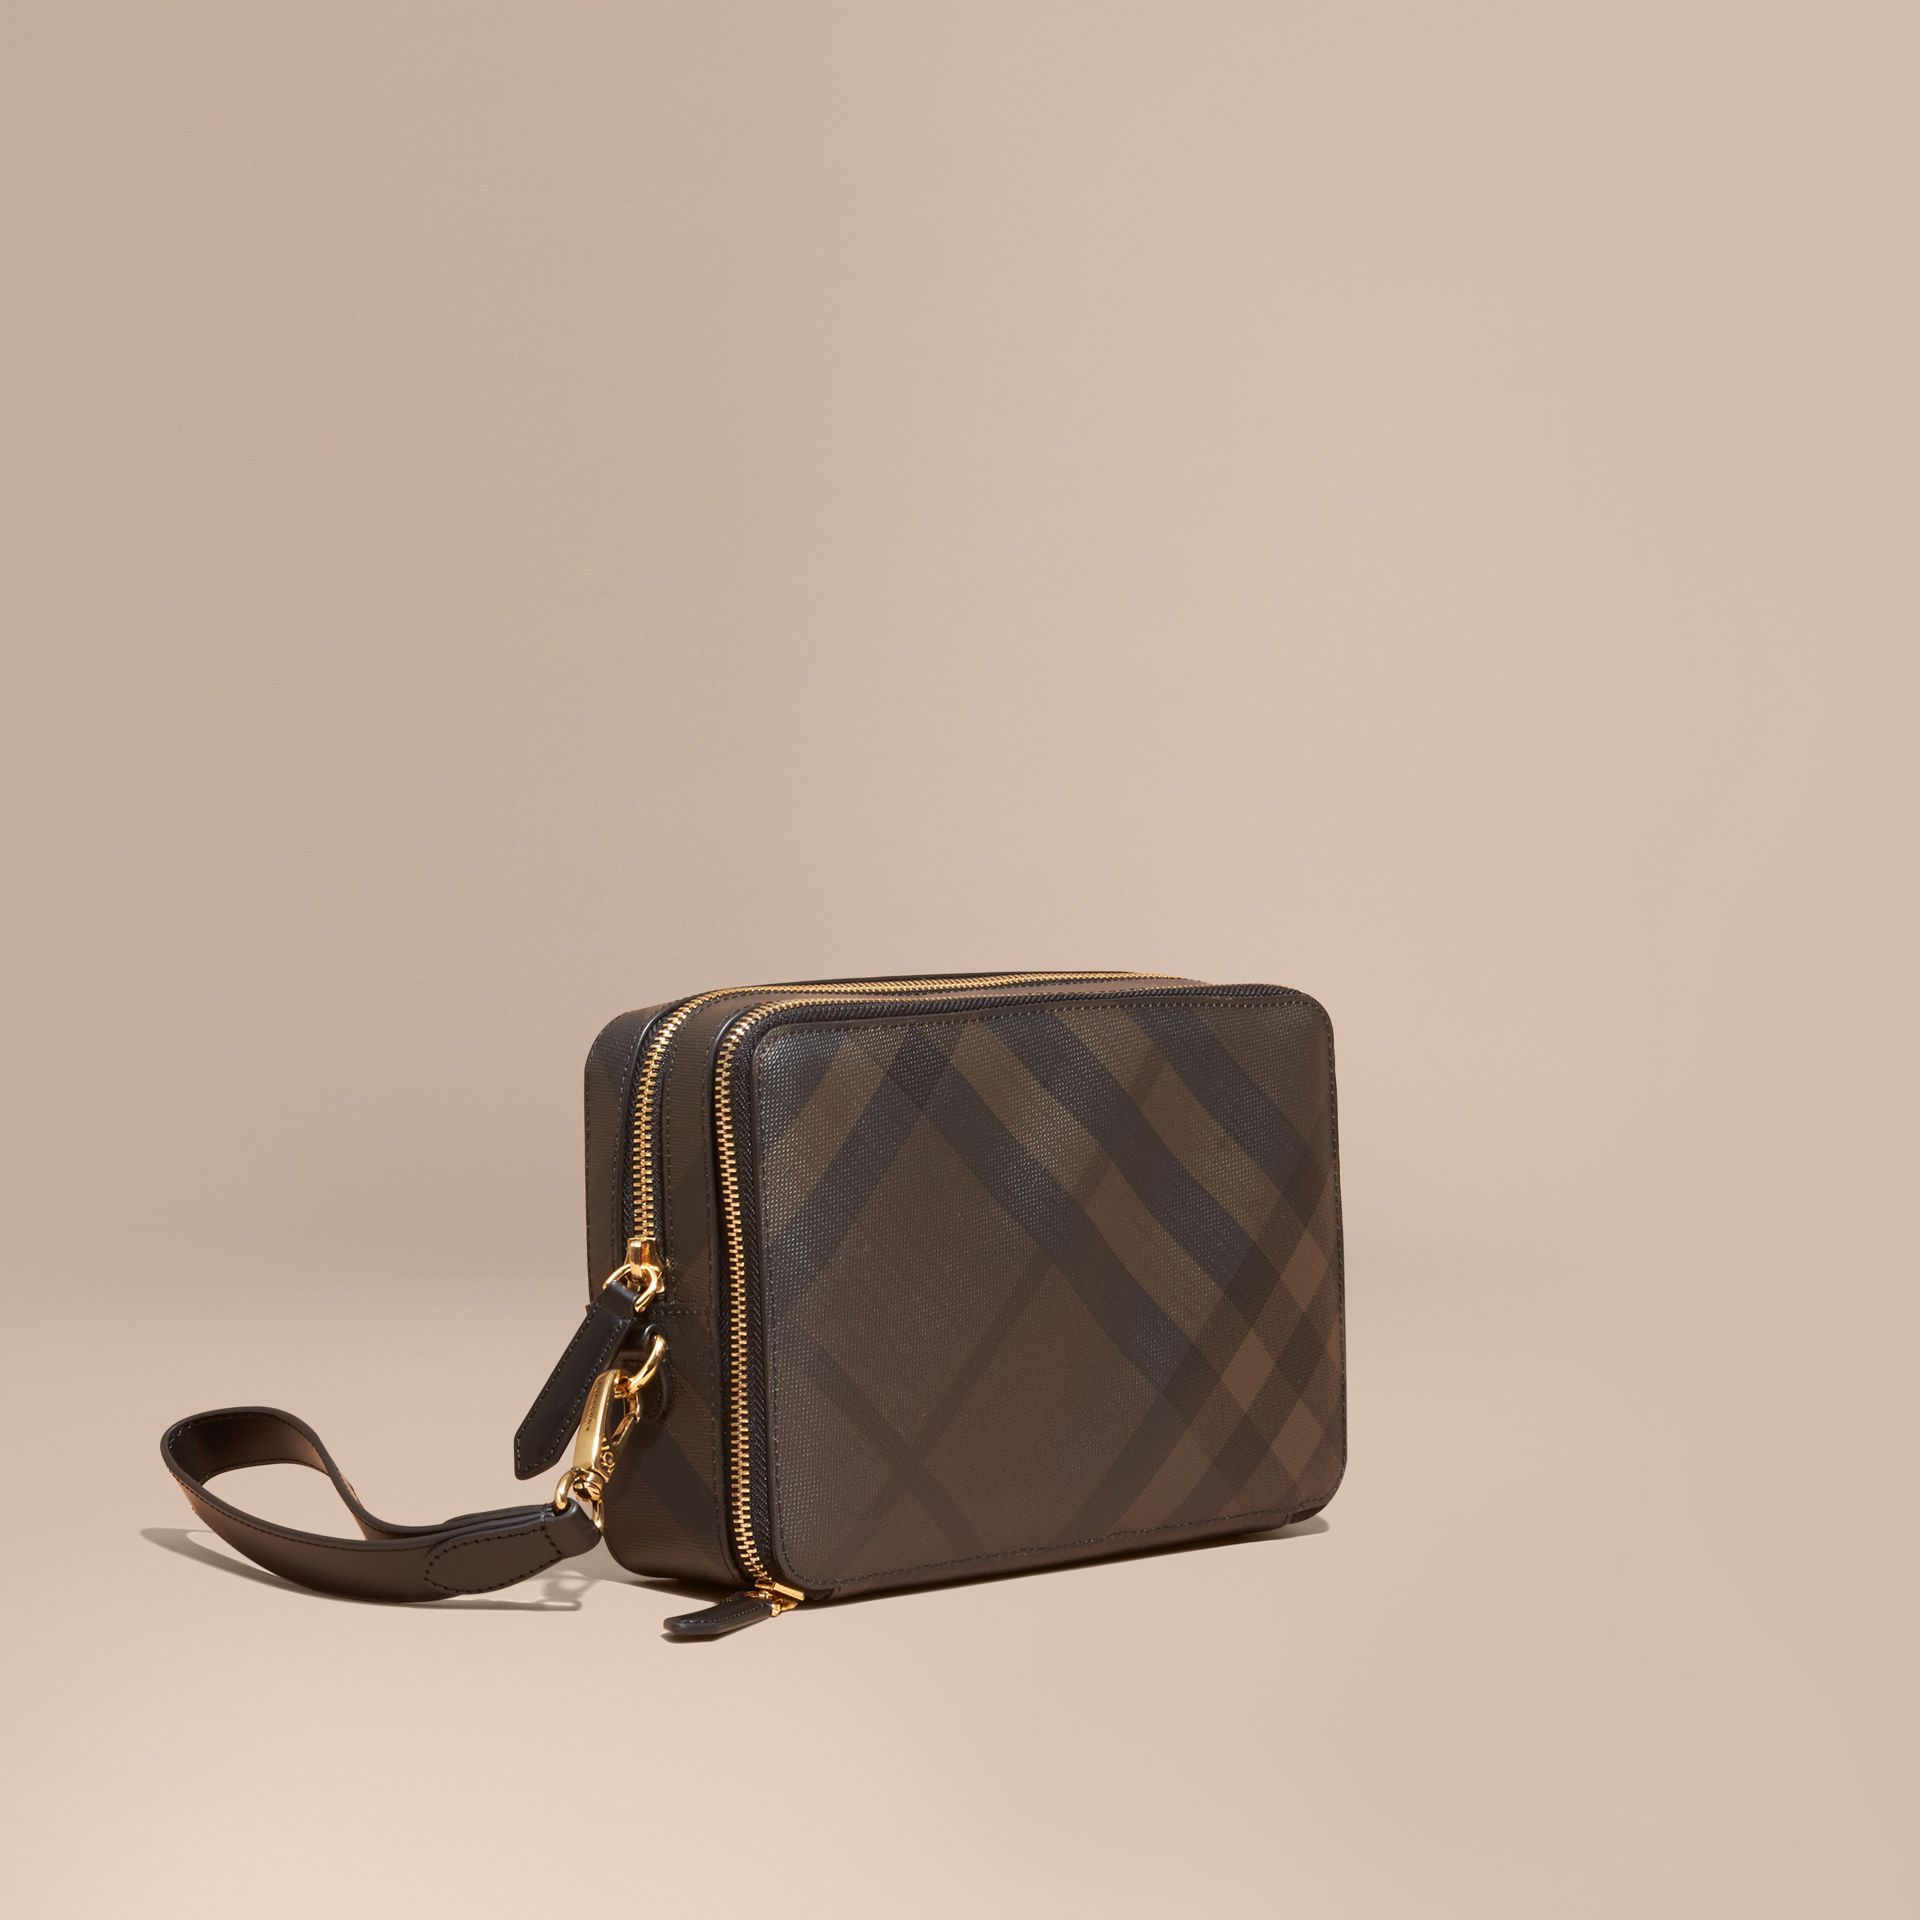 Leather-trimmed London Check Pouch in Chocolate/black - Men | Burberry United Kingdom - gallery image 1